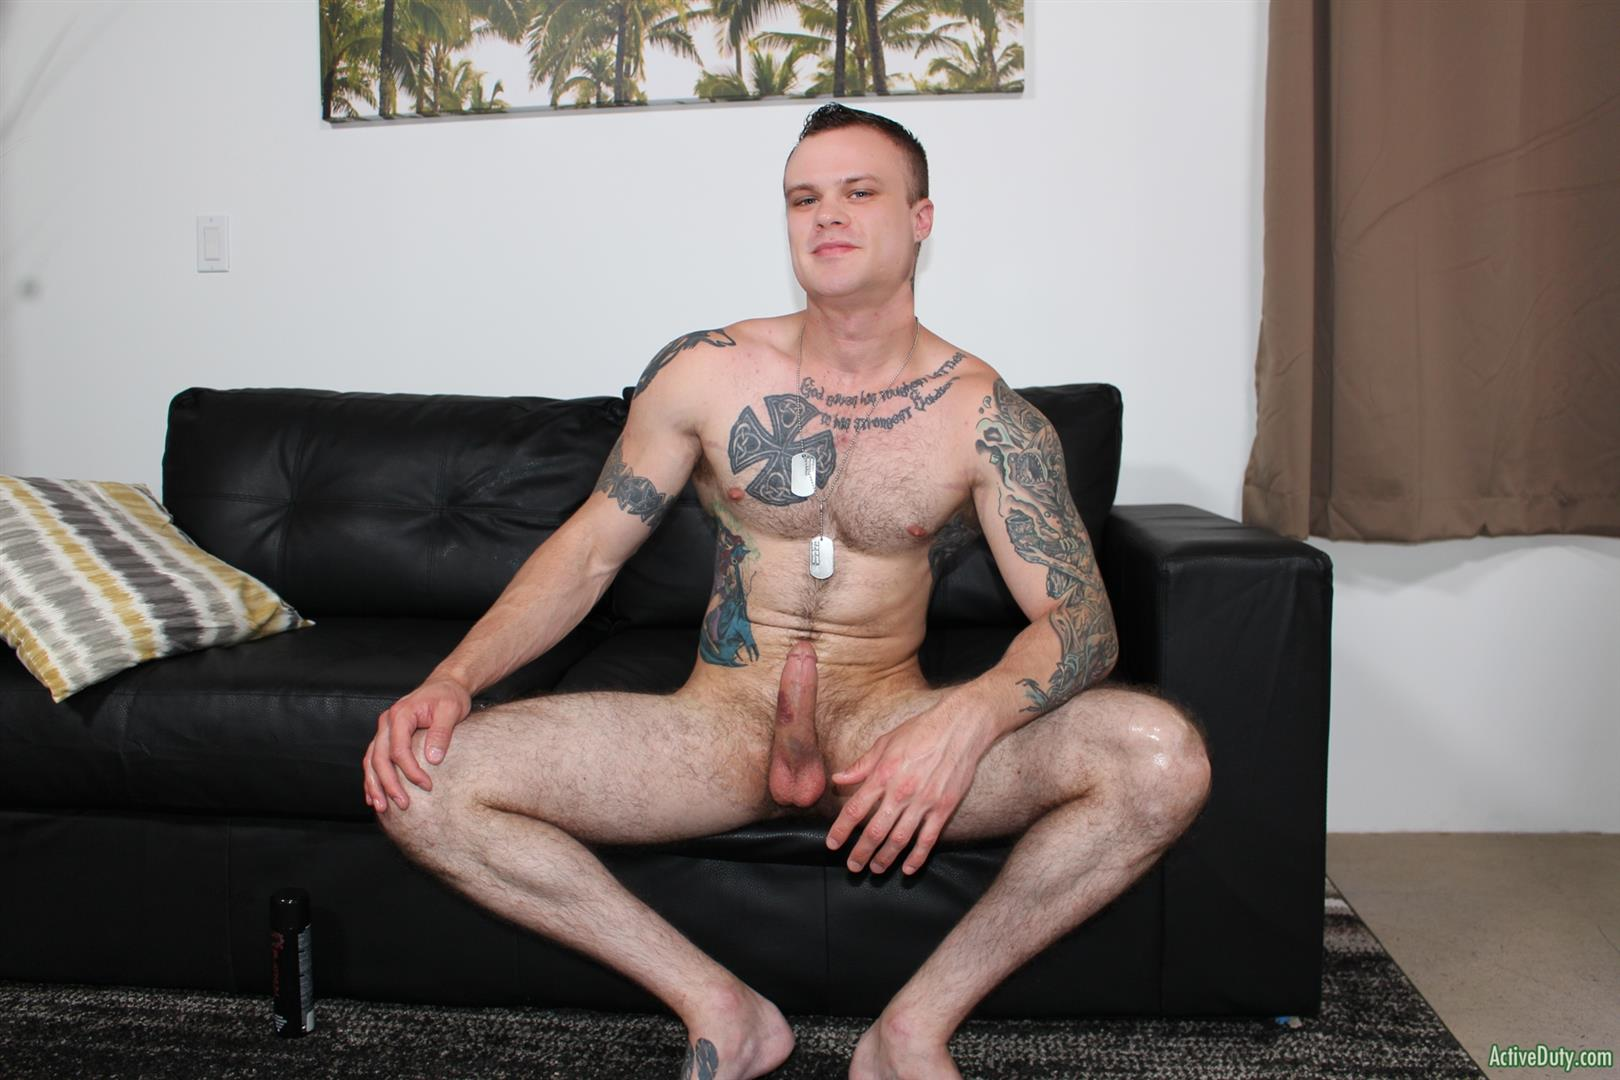 Active-Duty-Cody-Smith-Army-Hairy-Muscle-Guy-Jerking-Off-Big-Dick-12 Hairy Tatted Muscle Army Soldier Jerking His Cock